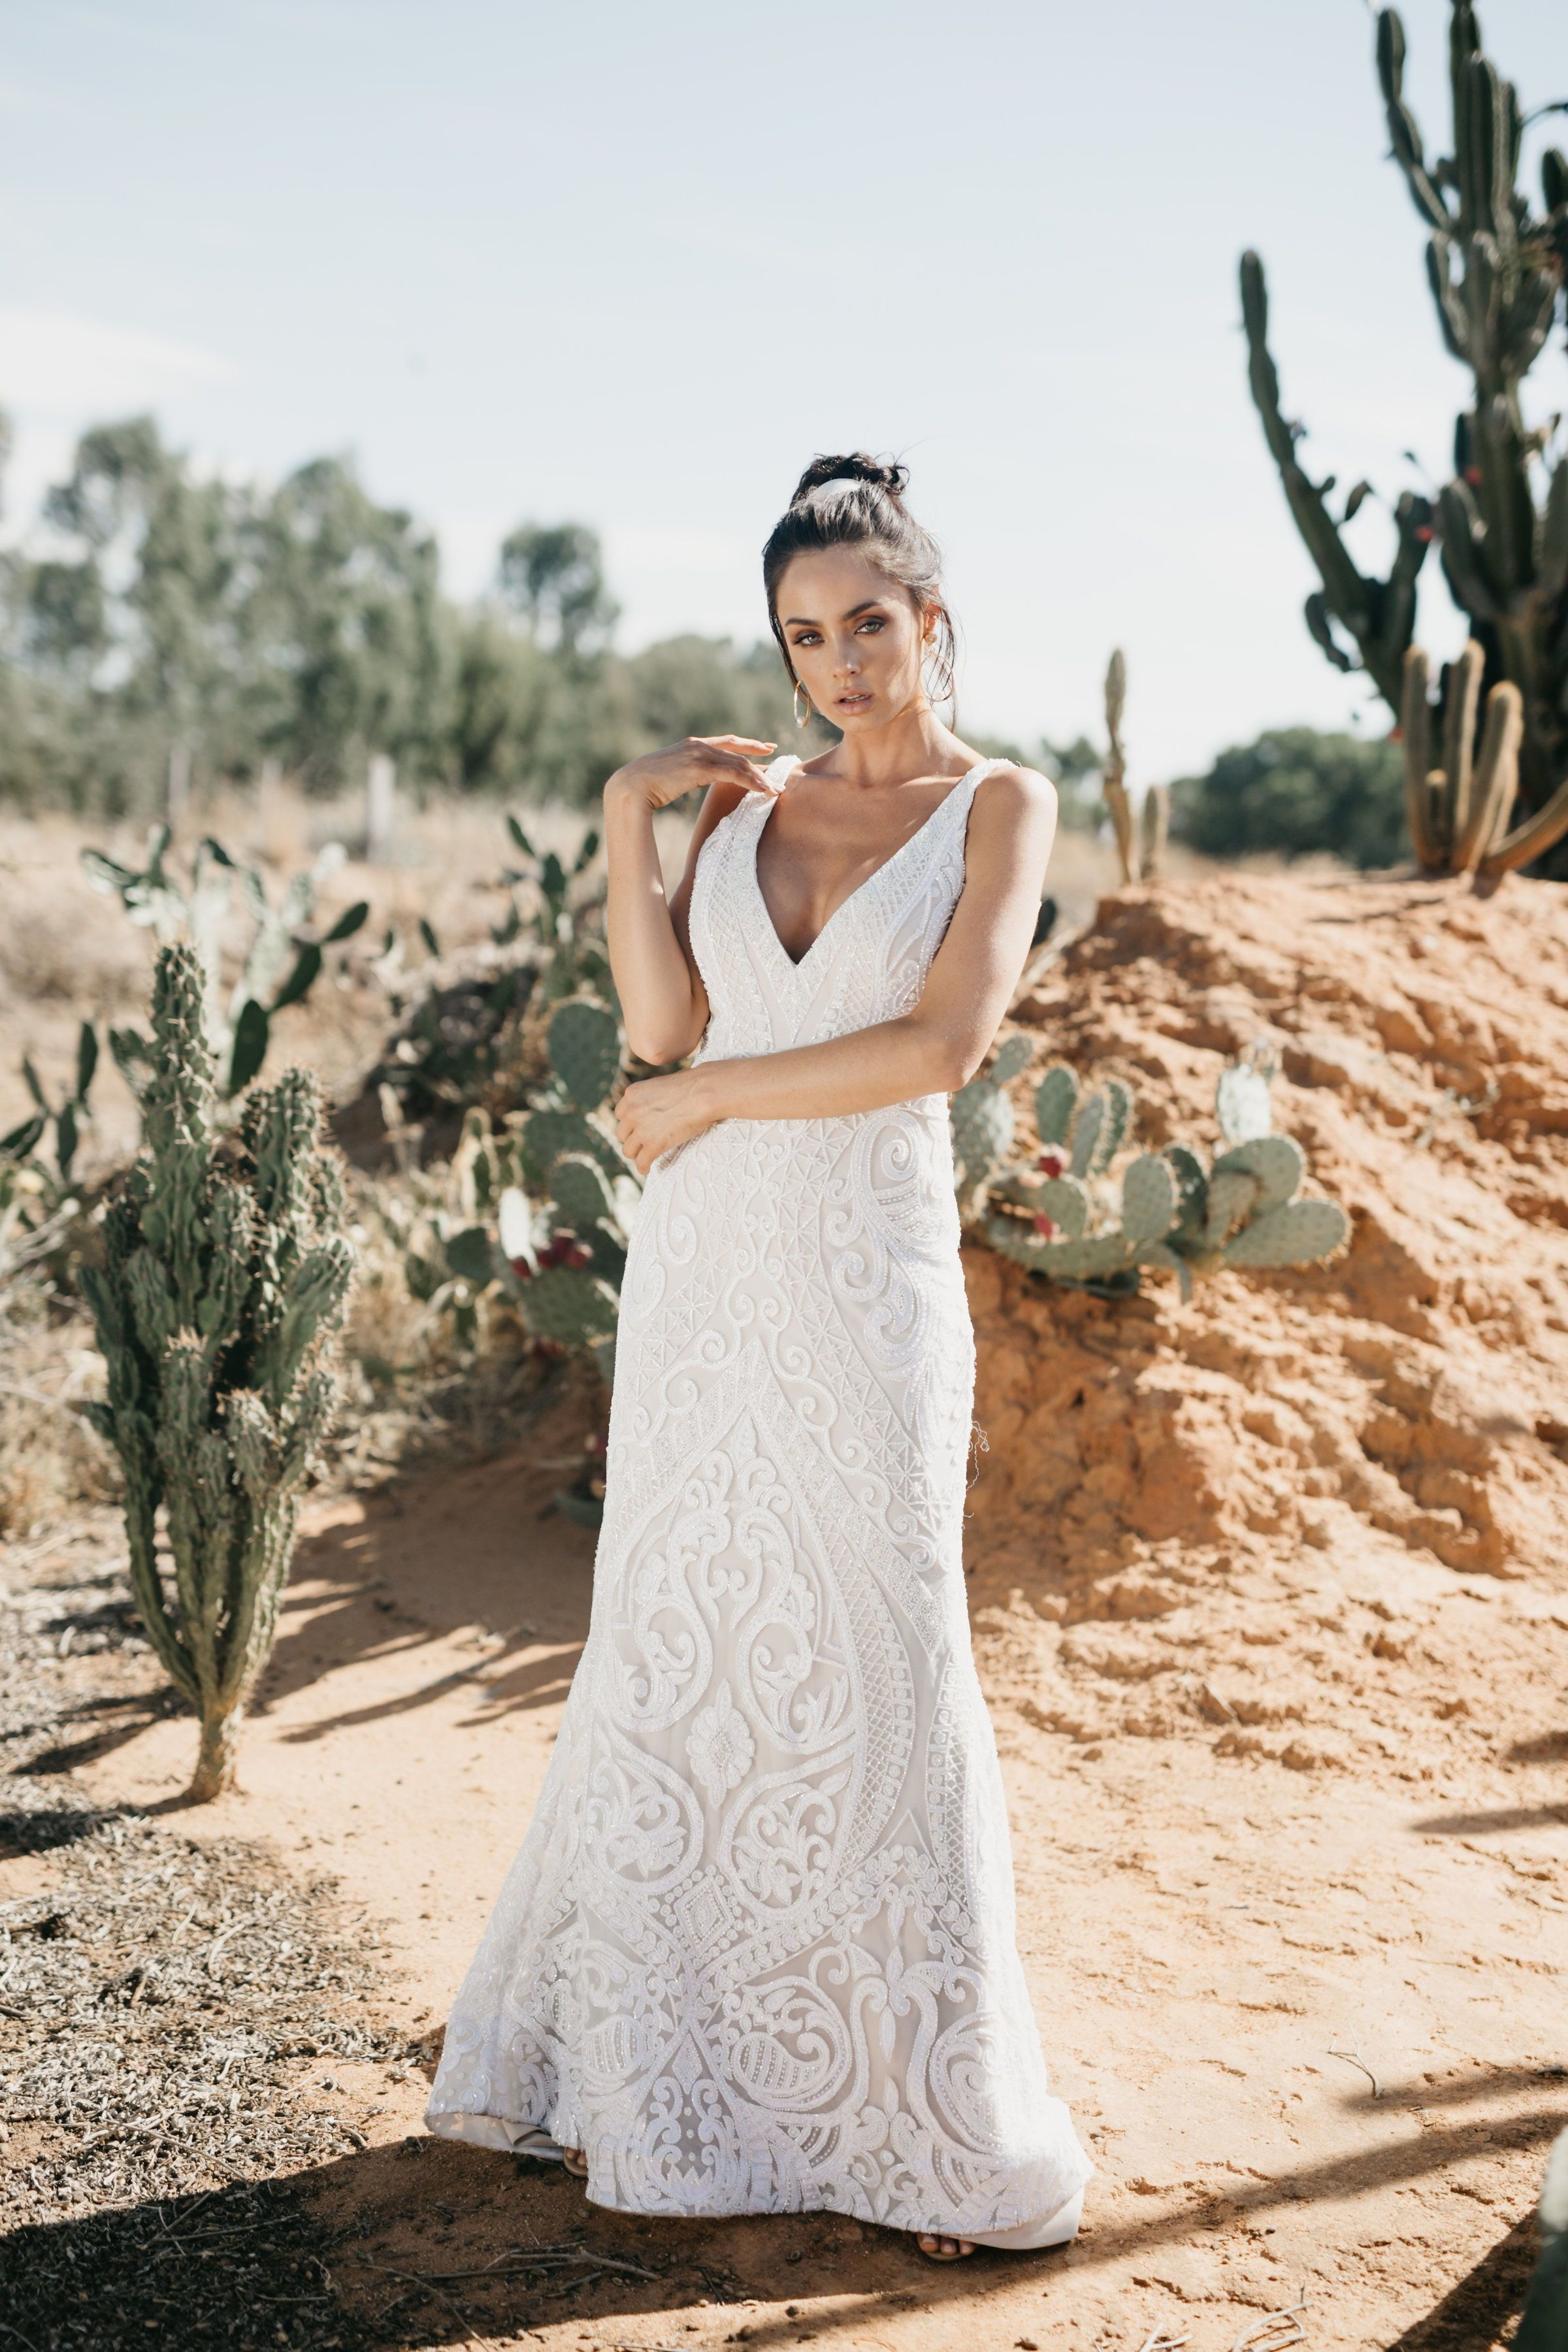 Halle By Jane Hill Modern Romantic Wedding Dresses For The Modern Bride Who Loves A Touch Of Indie Wedding Dress Fitted Wedding Dress Wedding Dress Styles